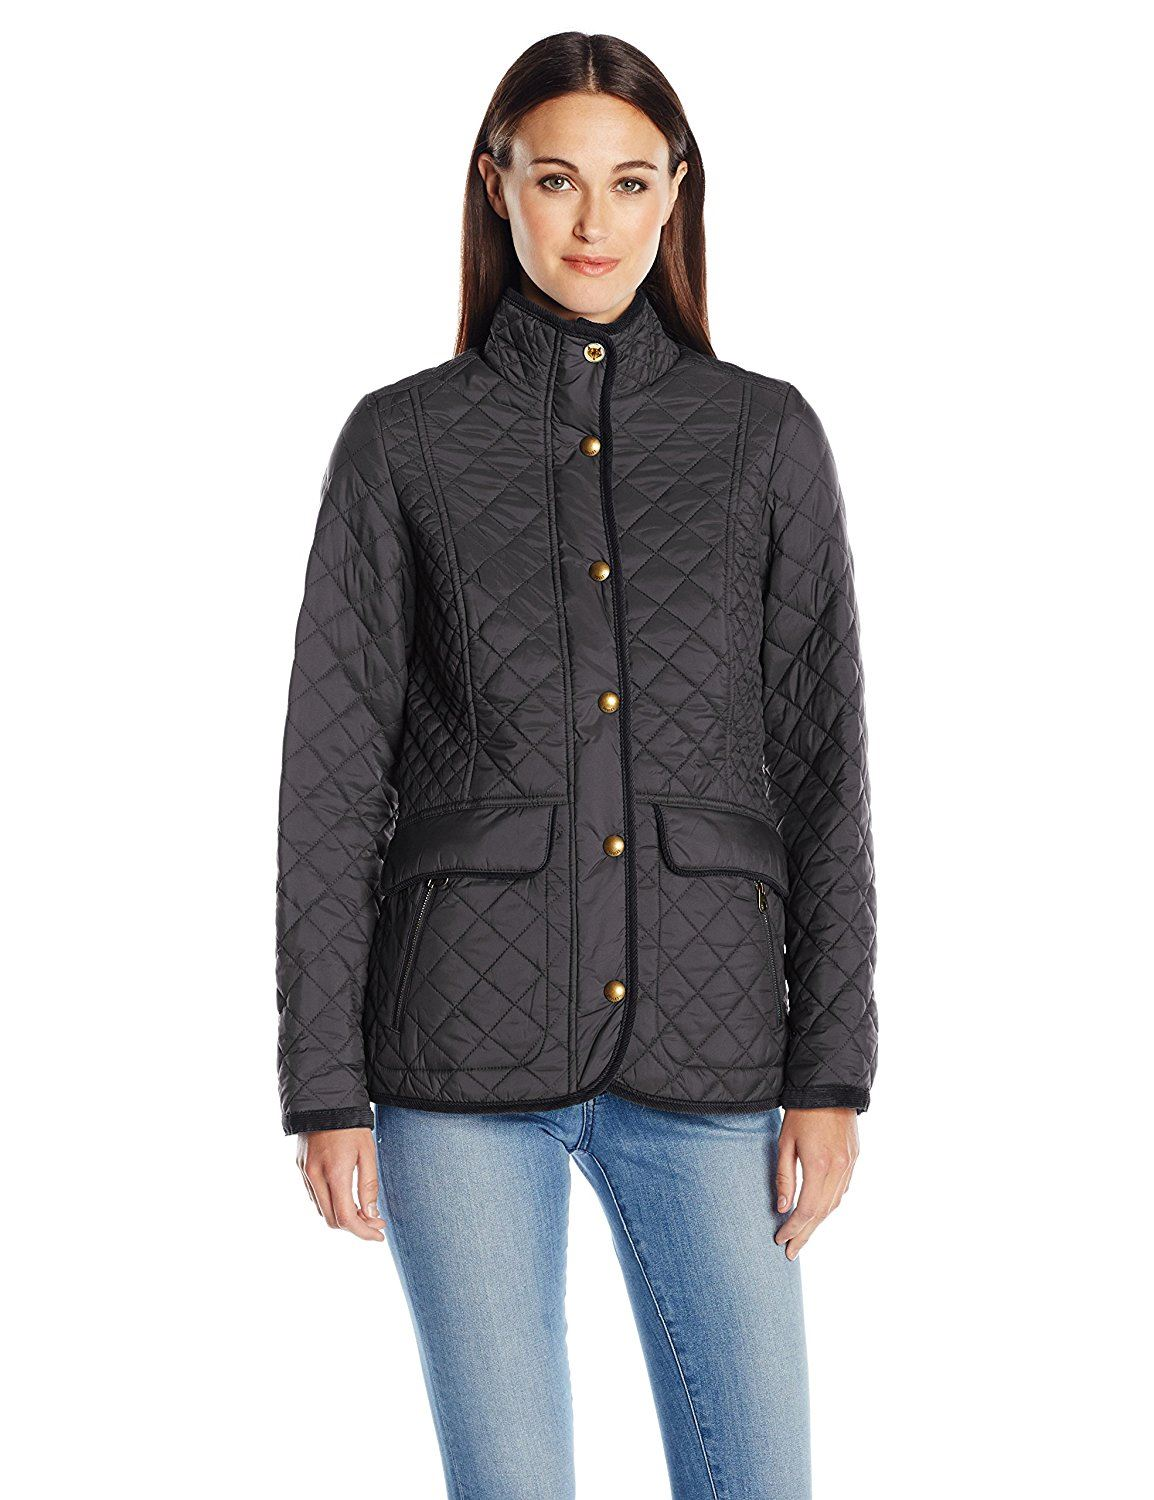 Joules Newdale Equestrian Womens Warm Country Fashion Classic Quilted Jacket NEW